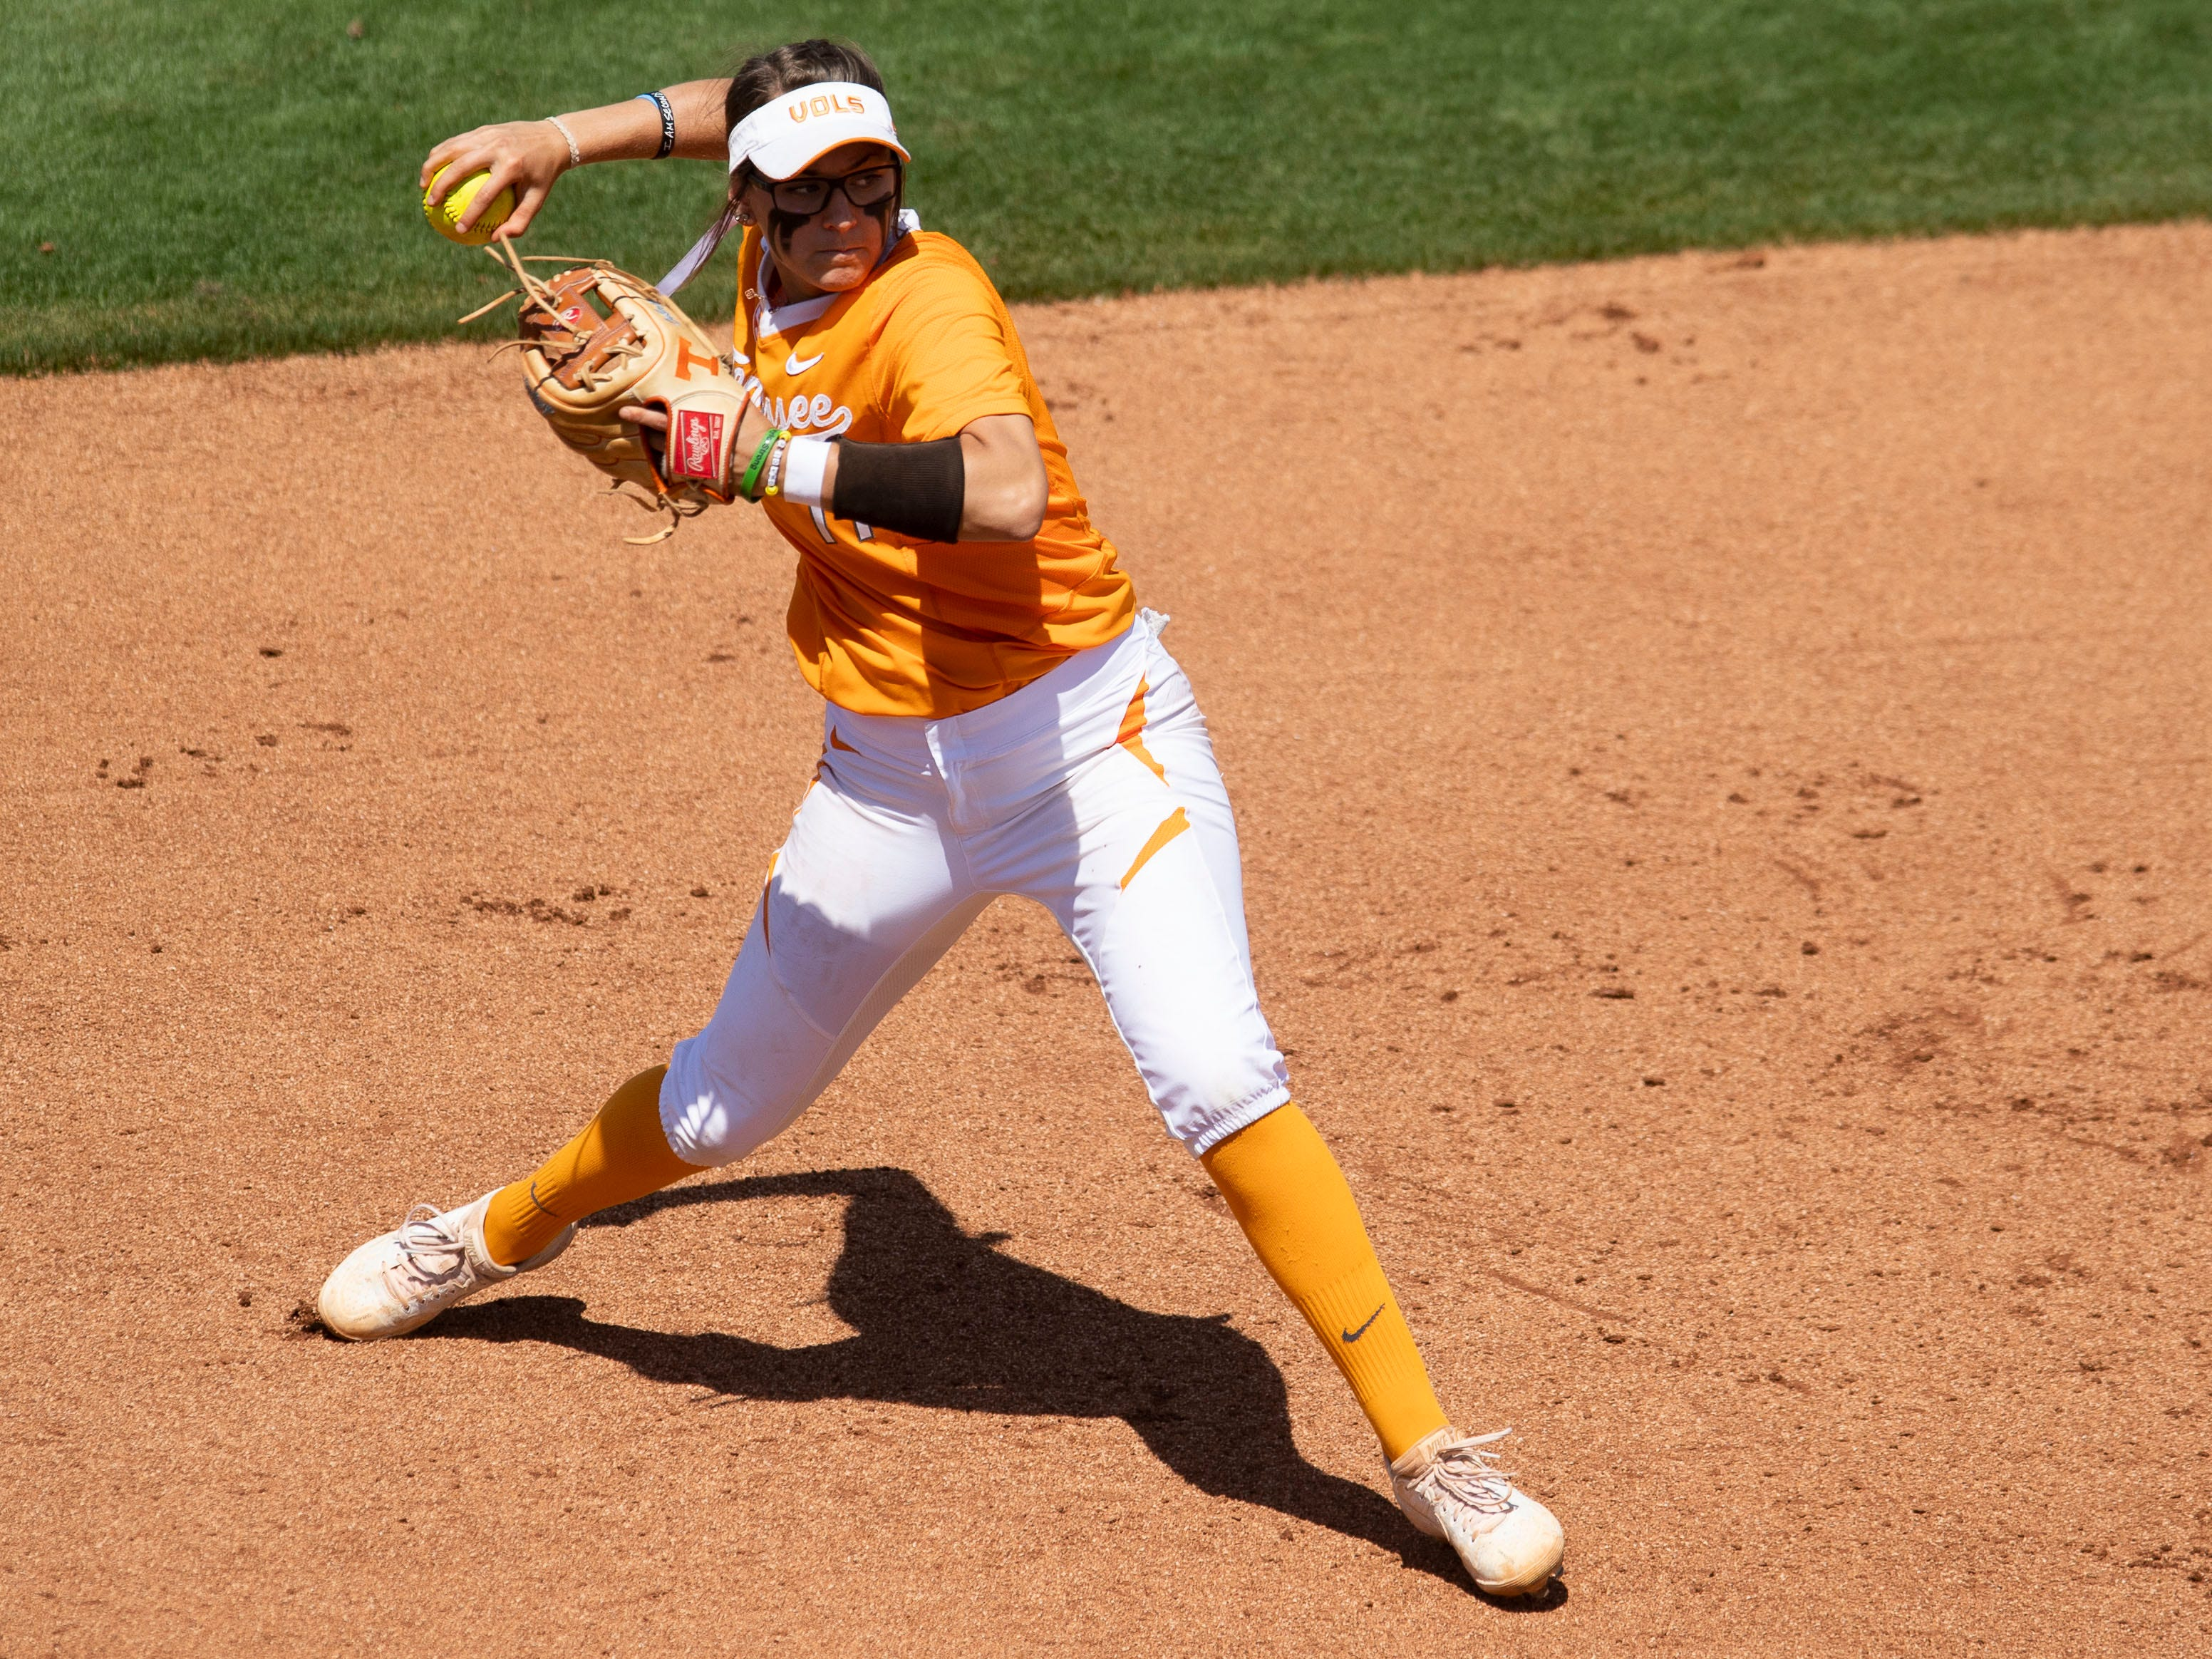 Tennessee's Gracie Osbron (77) on a throw to first in the game against Mississippi State at Sherri Parker Lee Stadium on Sunday, April 14, 2019.